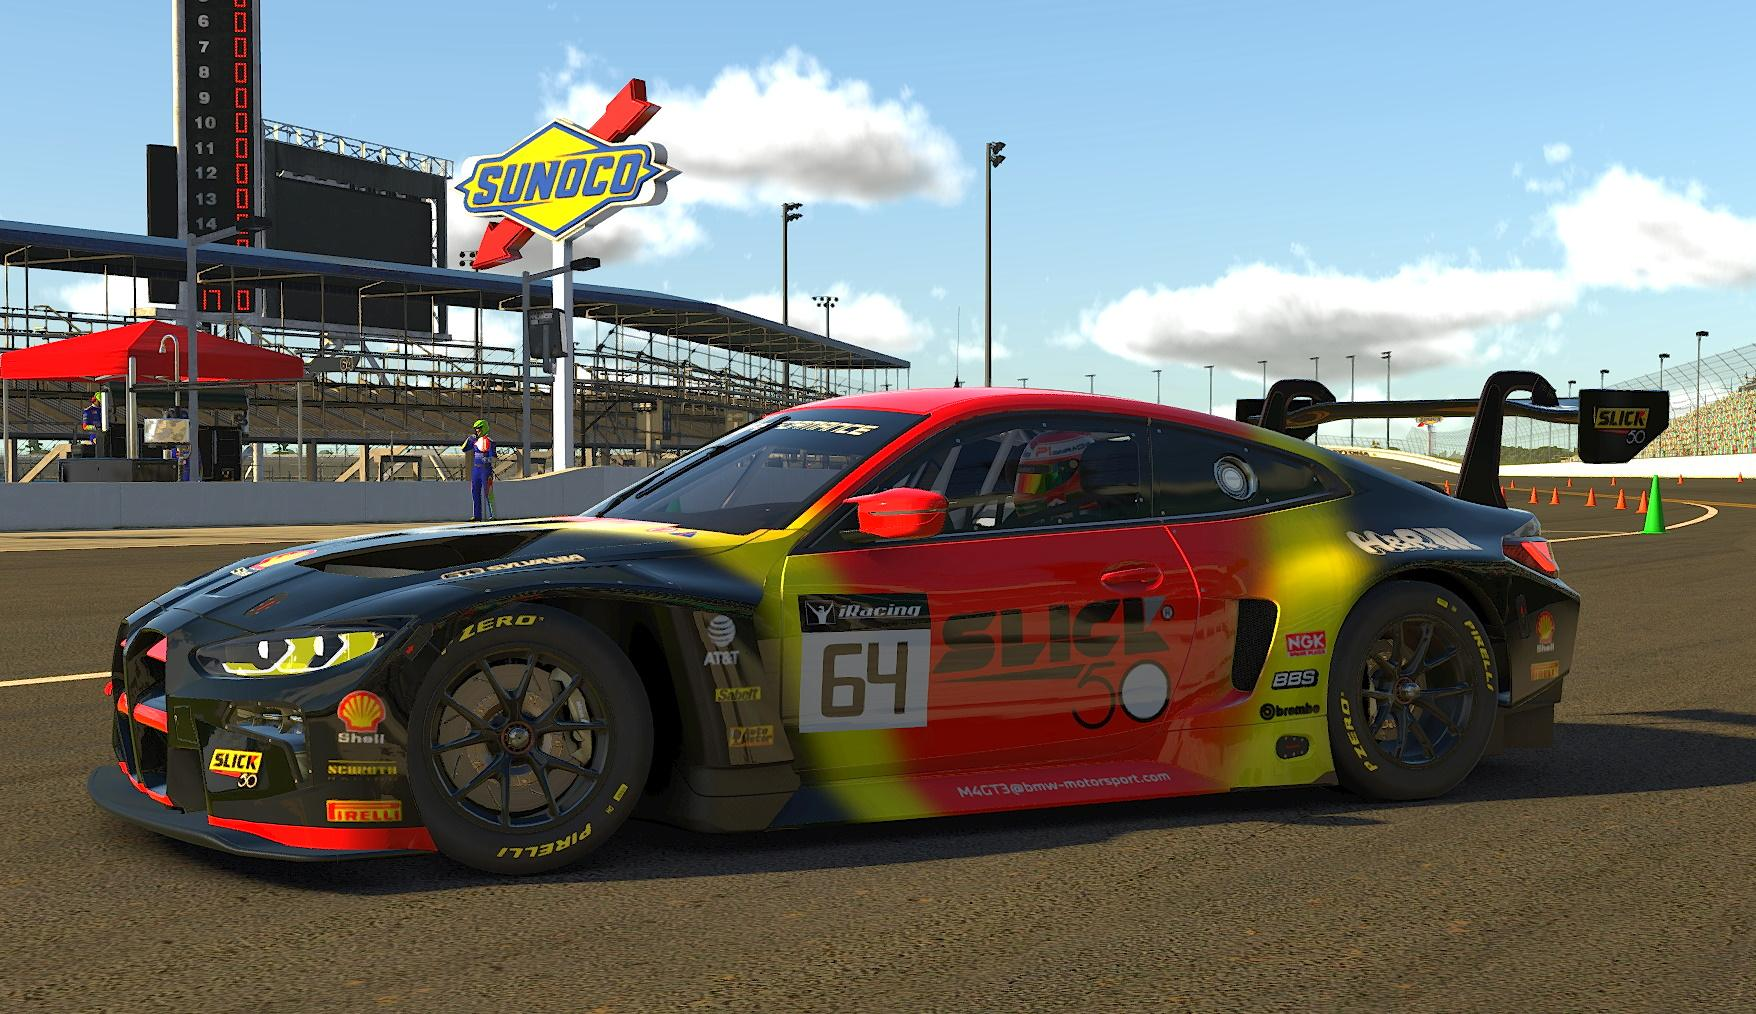 Preview of Slick 50 BMW M4 GT3 by John Paquin